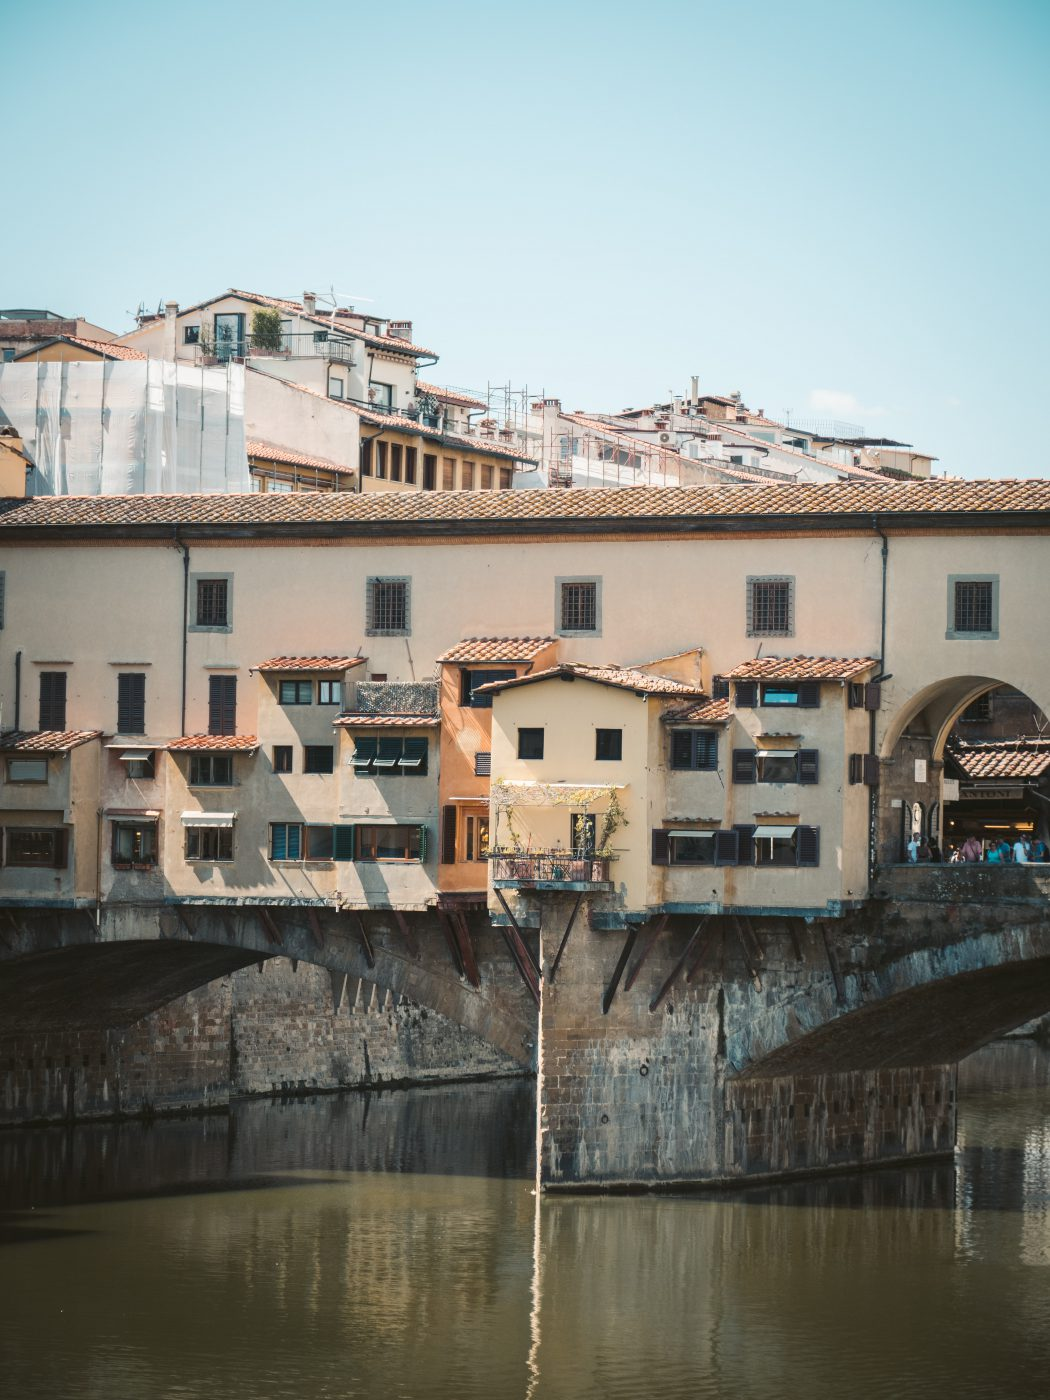 Building Bridges: The Story of the Ponte Vecchio in Florence